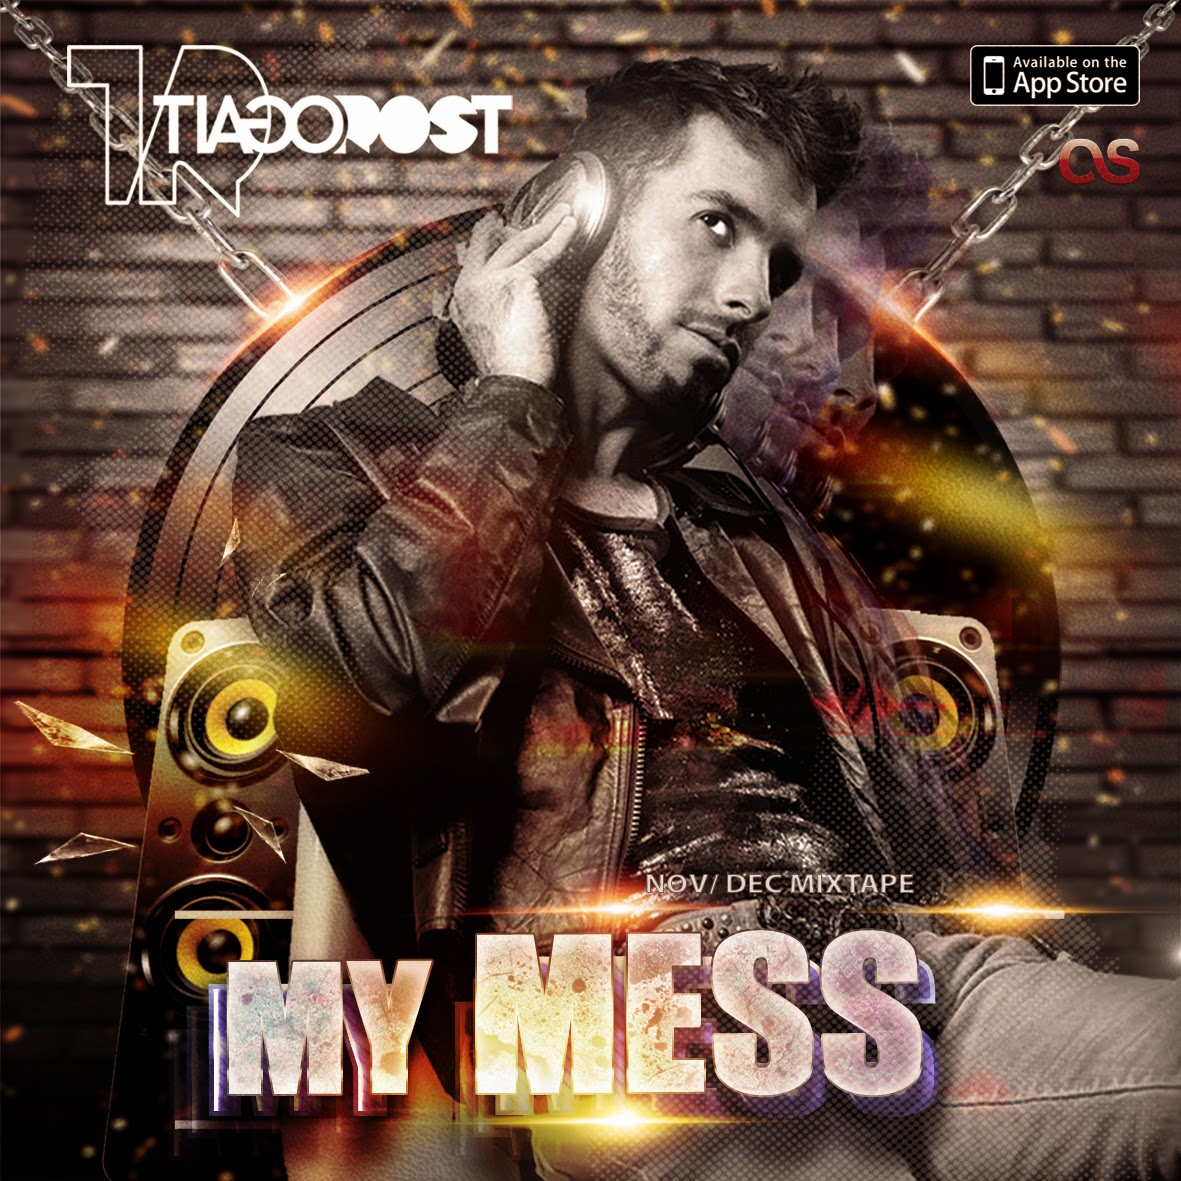 DJ Tiago Rost - MY MESS (Nov/Dec Mixtape)